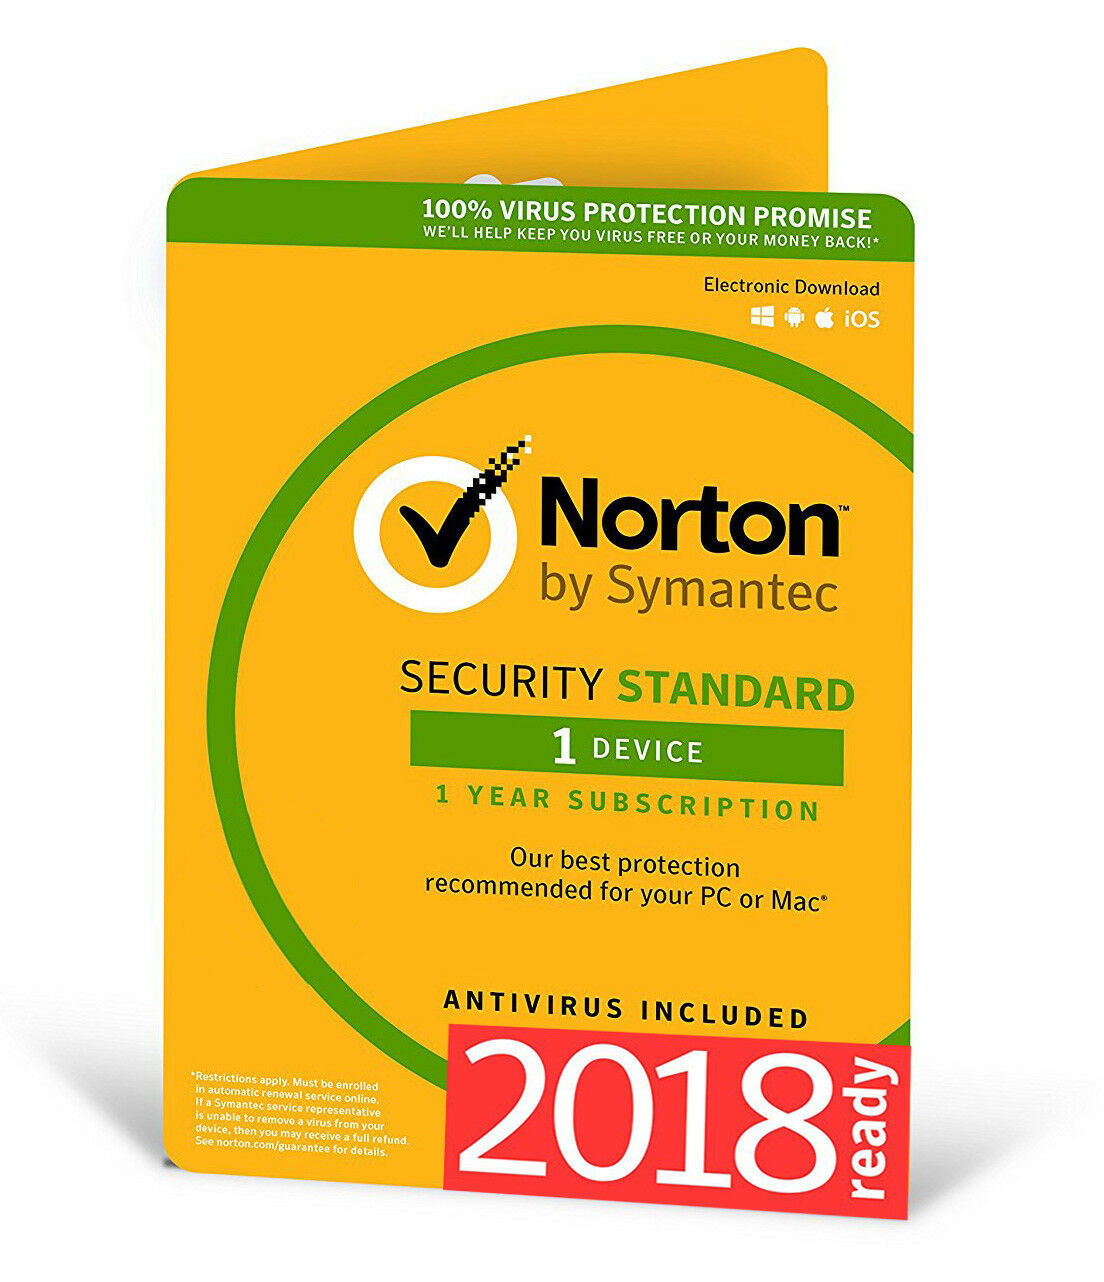 Symantec is an international software manufacturer and leader in the worldwide production of computer security systems. It develops antiviruses, protection tools, firewalls and internet security solutions for businesses, homes and offices complete with deals and discounts.